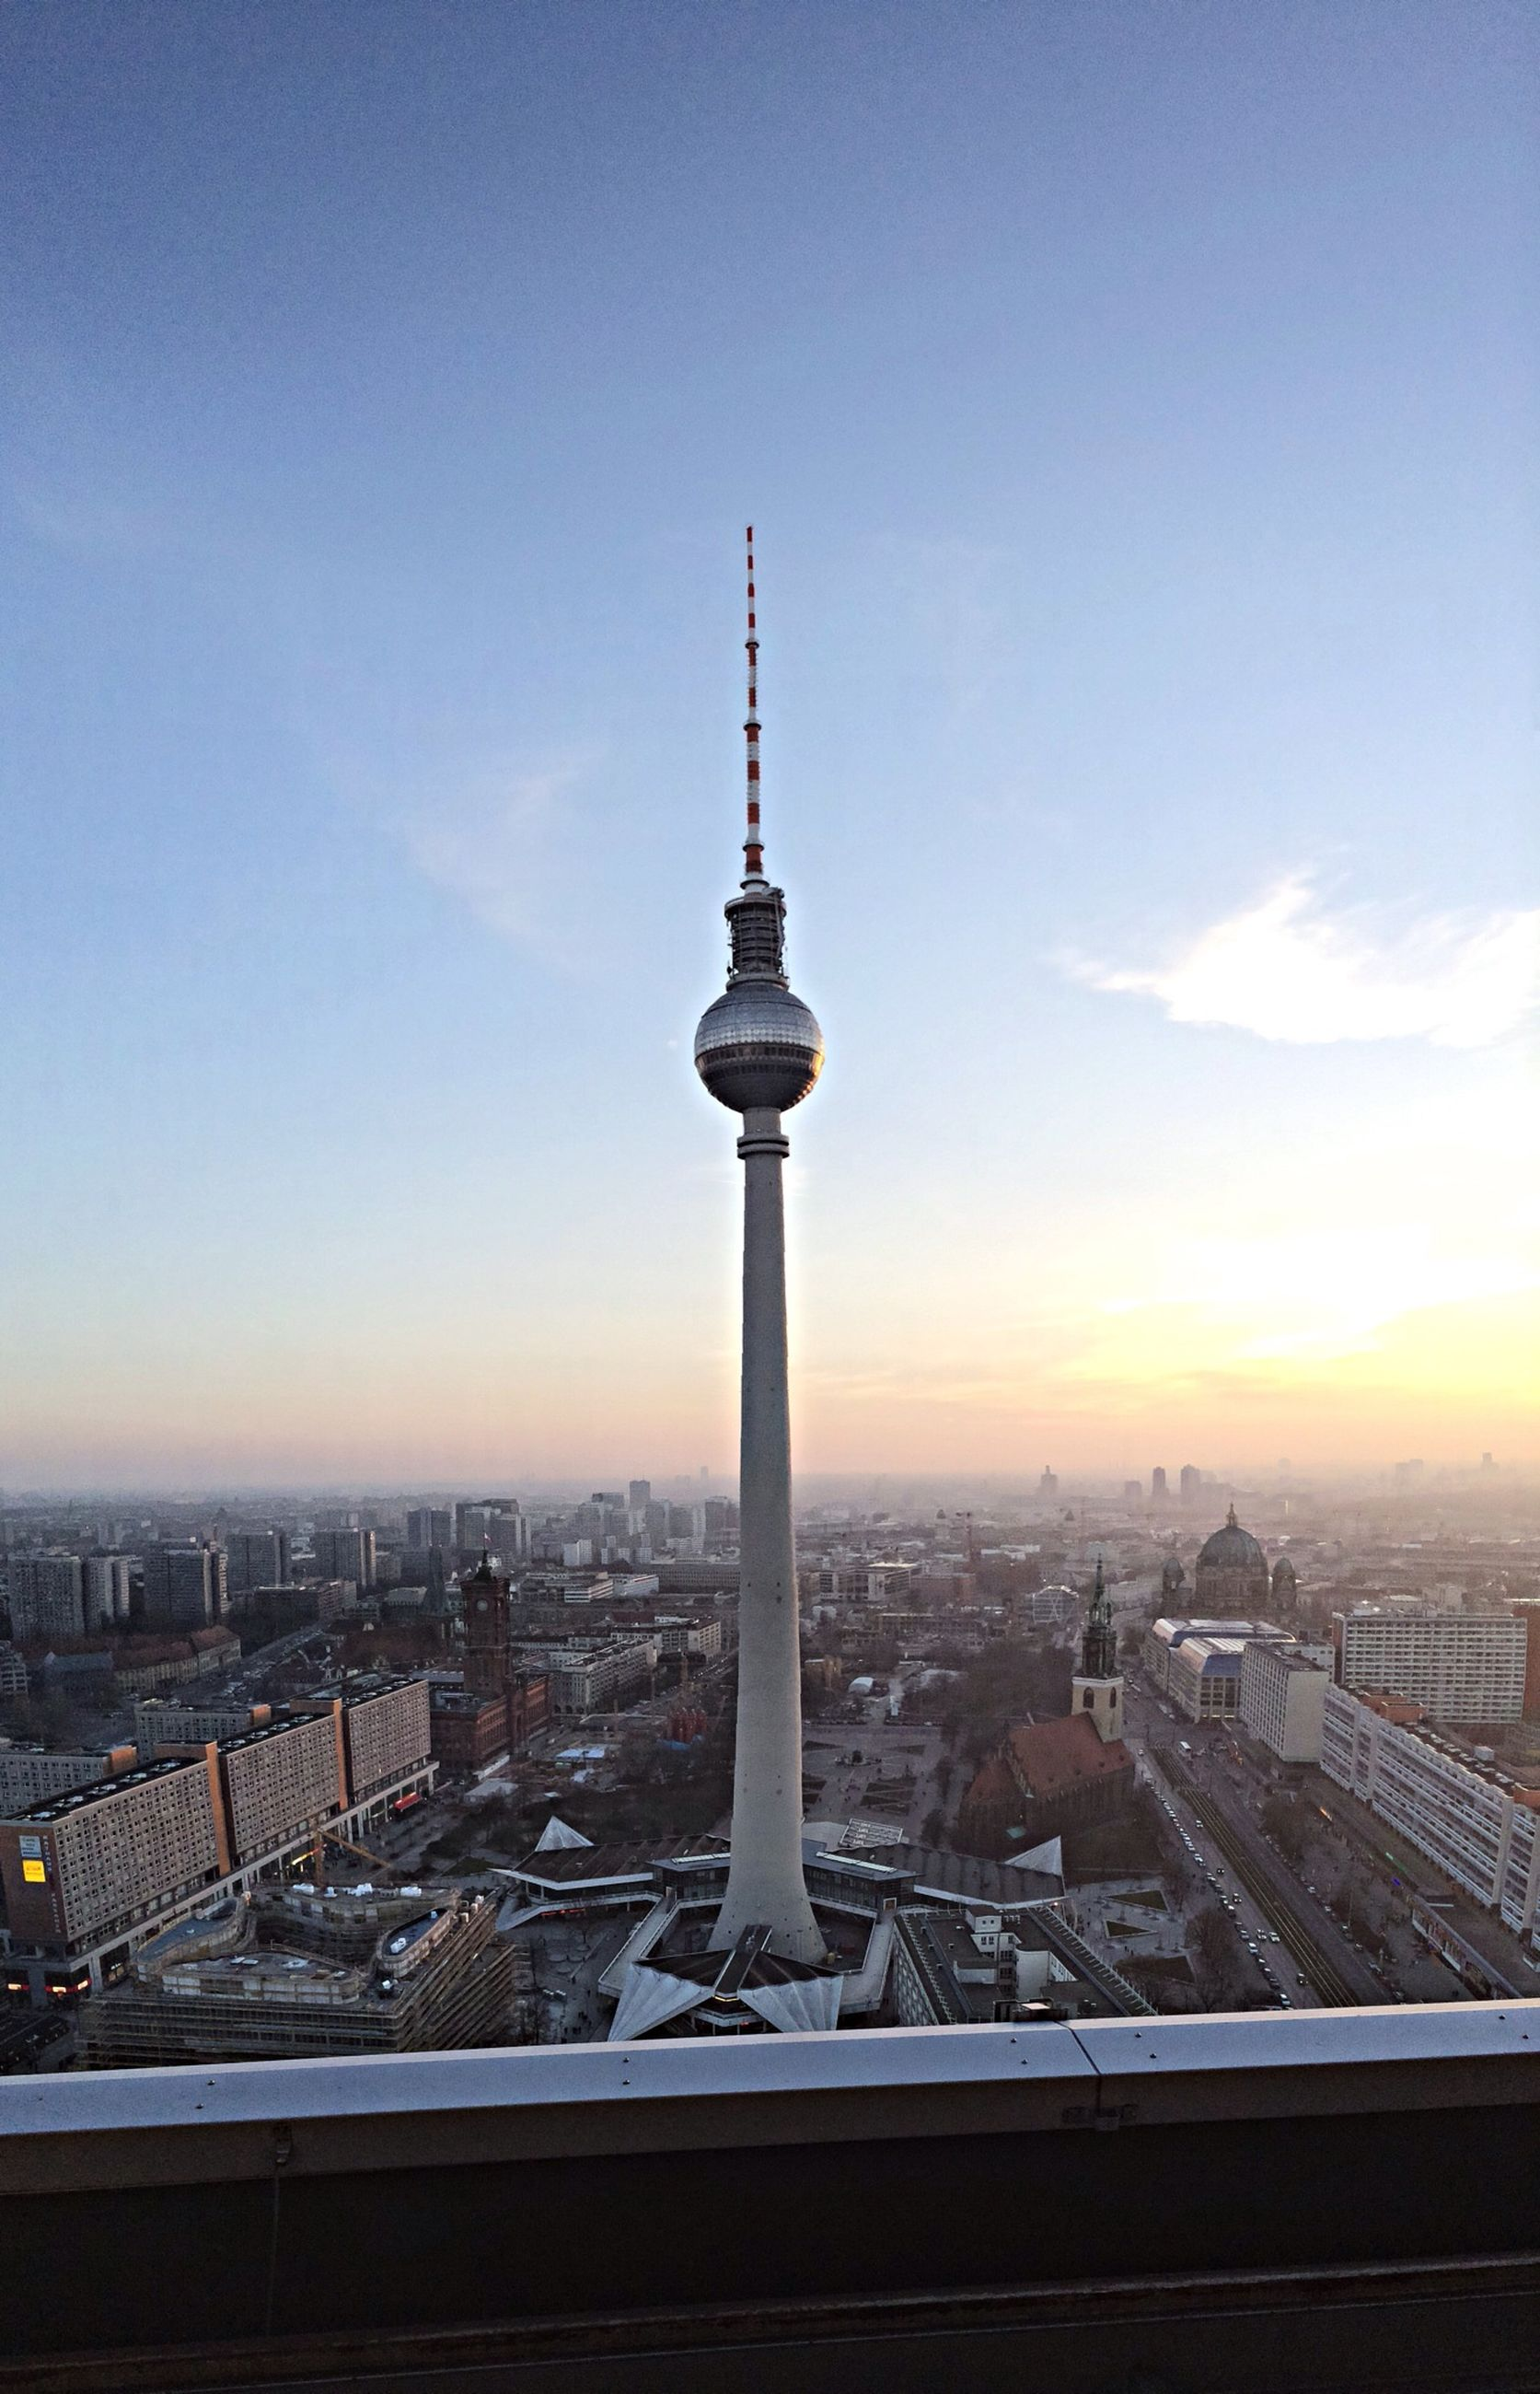 architecture, building exterior, city, built structure, cityscape, tower, tall - high, international landmark, communications tower, capital cities, famous place, travel destinations, spire, skyscraper, tourism, television tower, fernsehturm, travel, sky, sphere